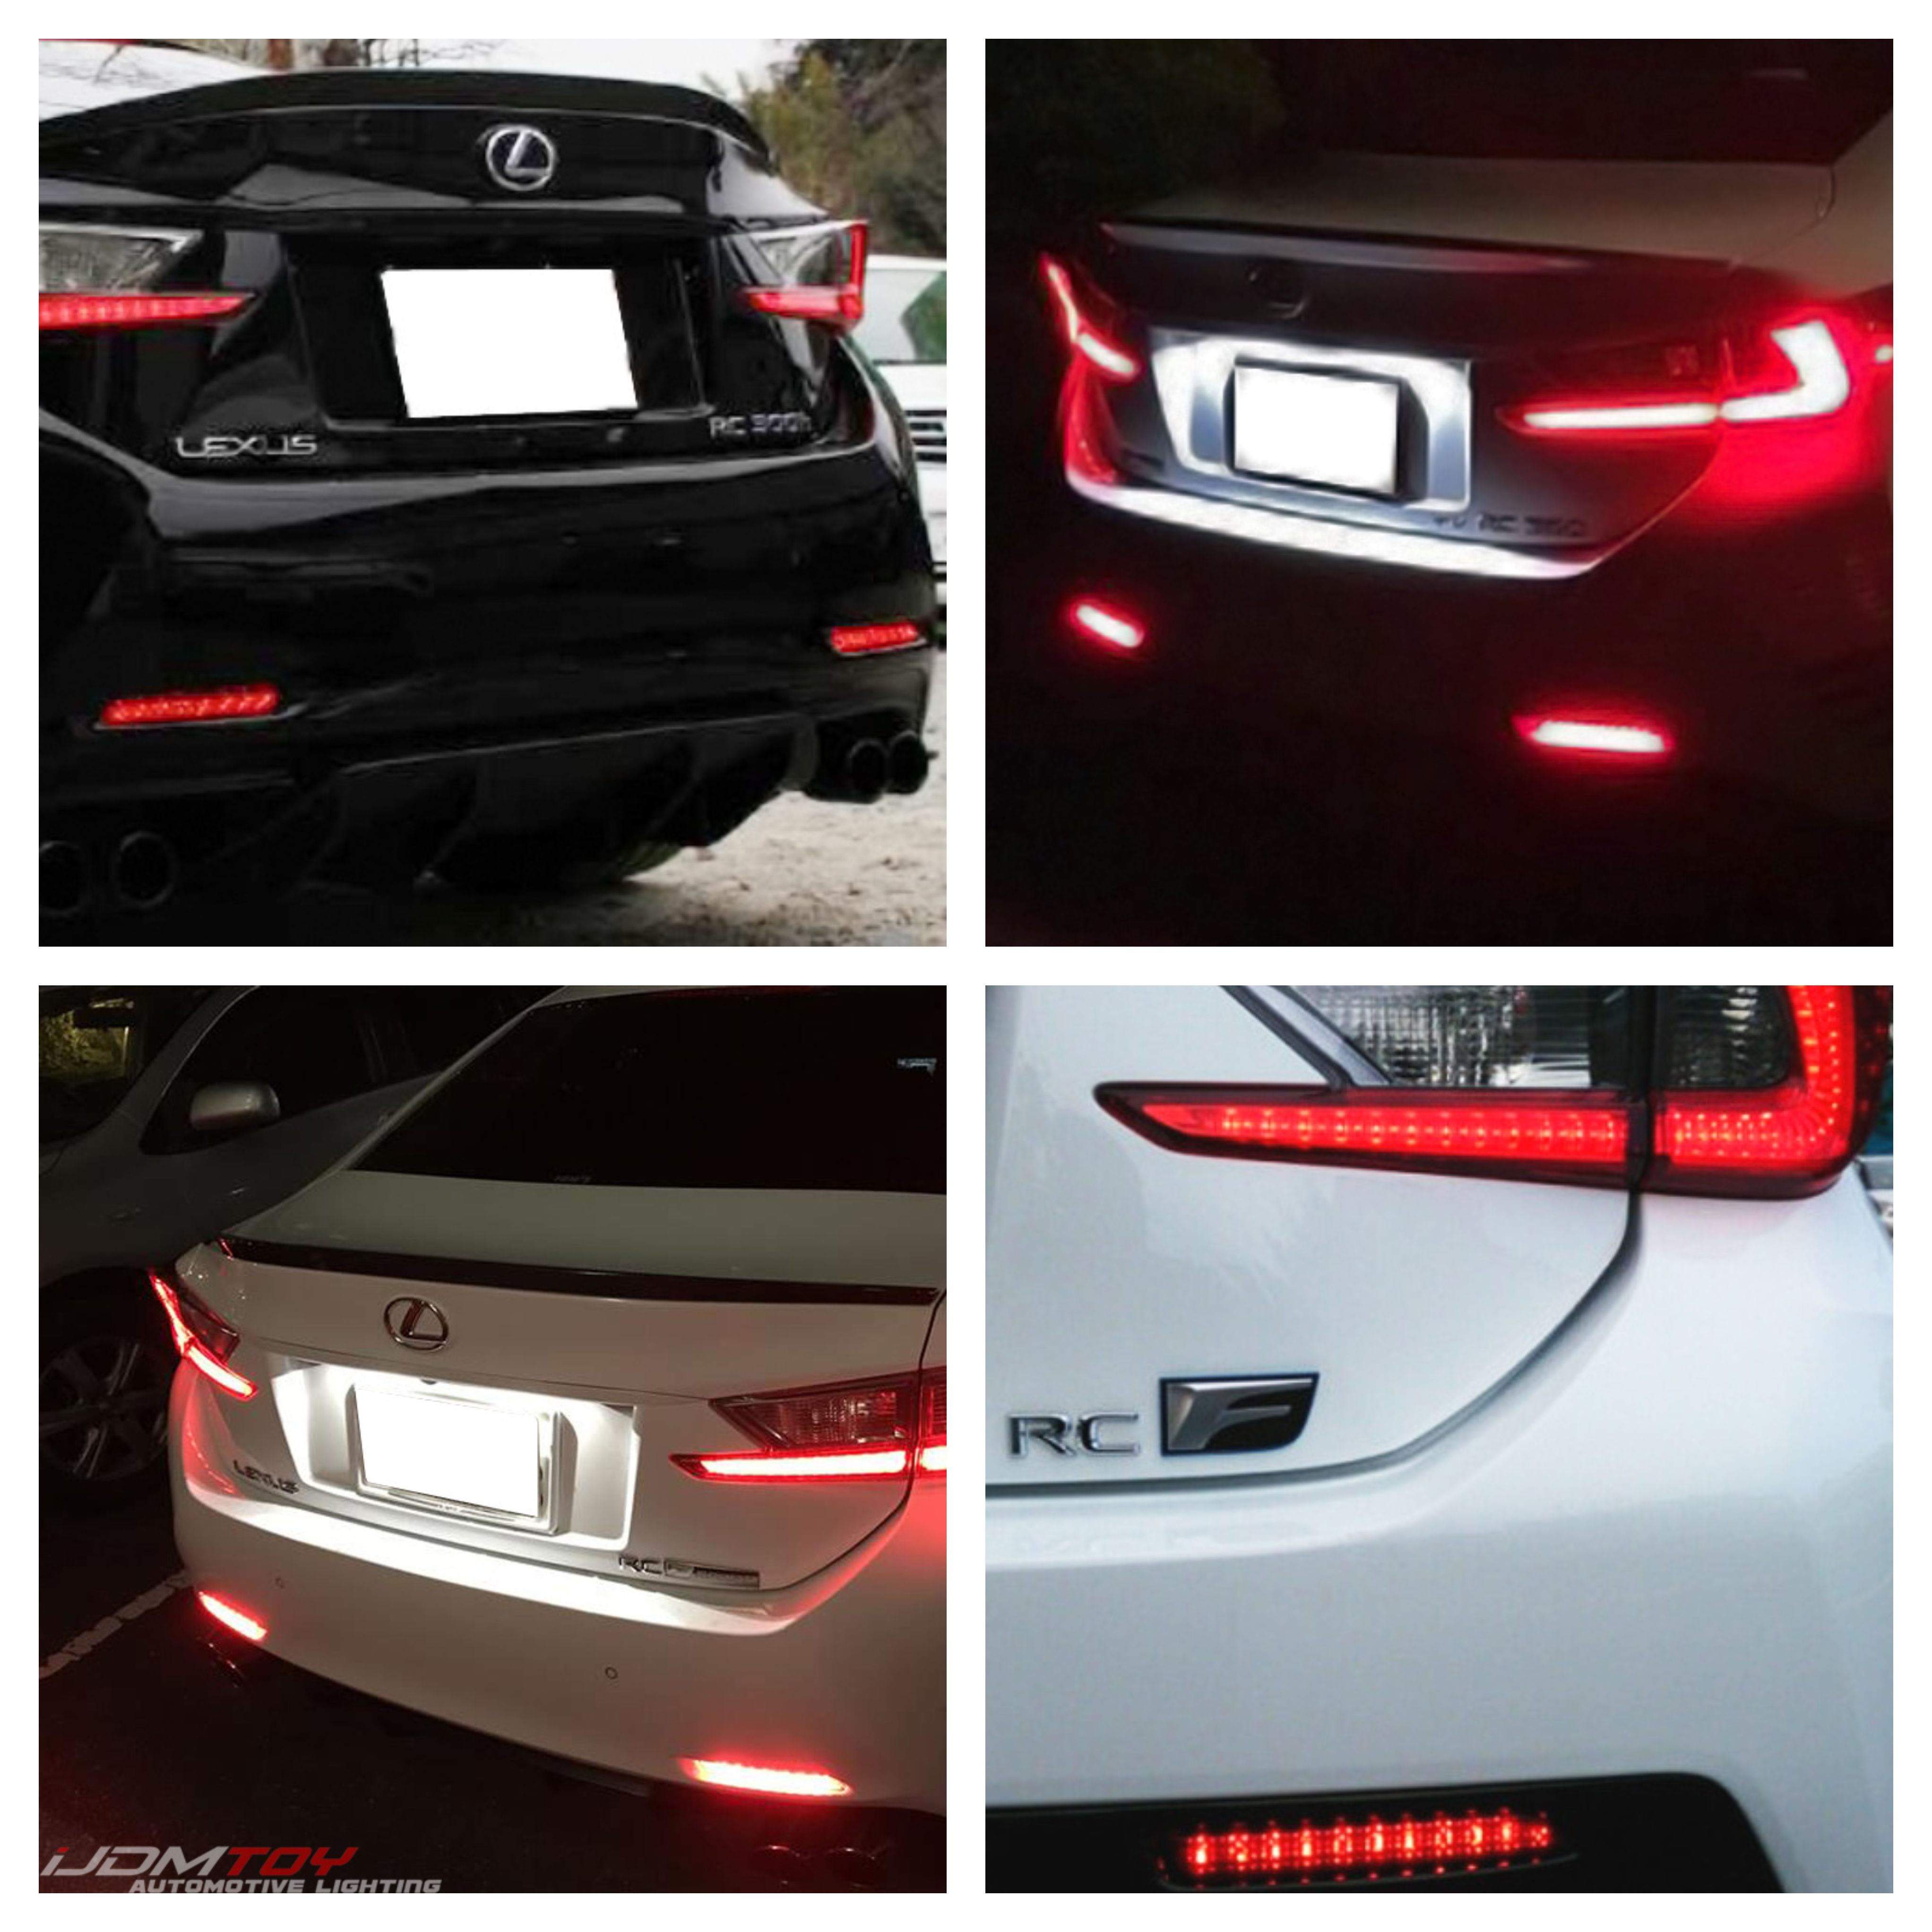 Bring Your Lexus To New Heights And Make It A Hotter Car To Drive With A Pair Of Brilliant Red Led Bumper Reflector Running Lights Apply Lexus Reflectors Led